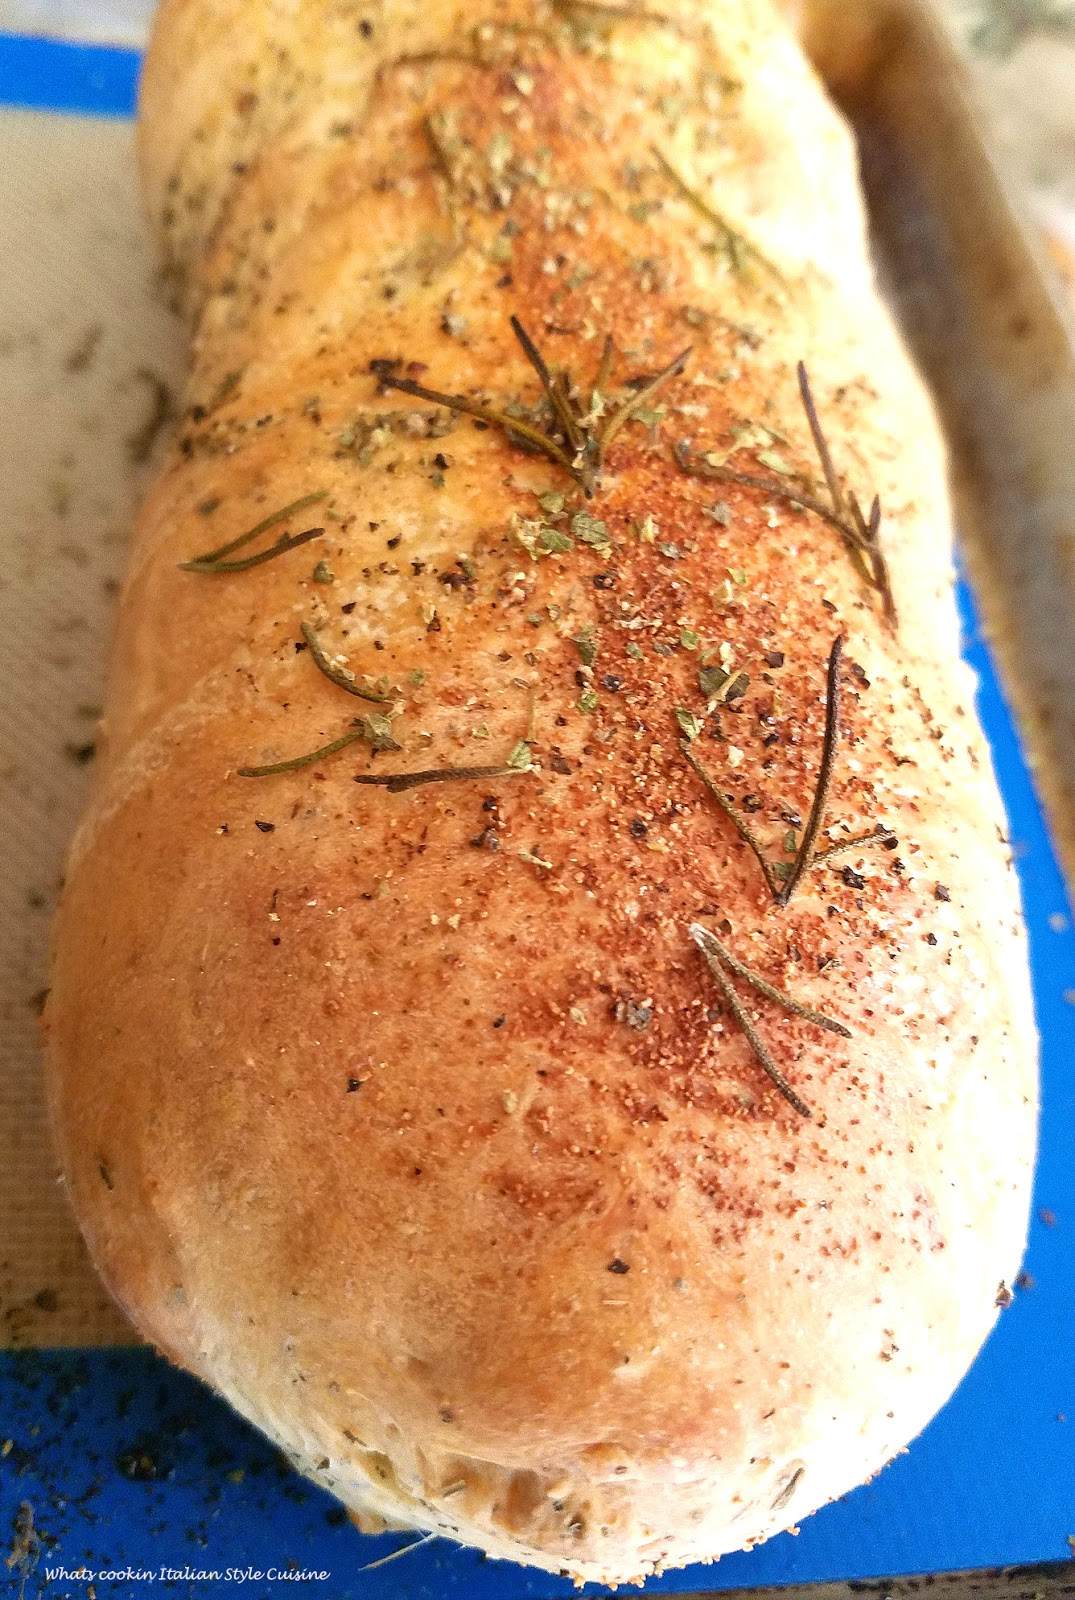 Stuffed Bread dough with cheese Italian food that's like pizza This is delicious pizza dough stuffed with cheese and fresh herbs. A  homemade bread dough that was mom's recipe. This is called a focaccia and italian herb bread that is stuffed with cheese. Rosemary is a main herb flavored in this bread along with black pepper and fresh basil